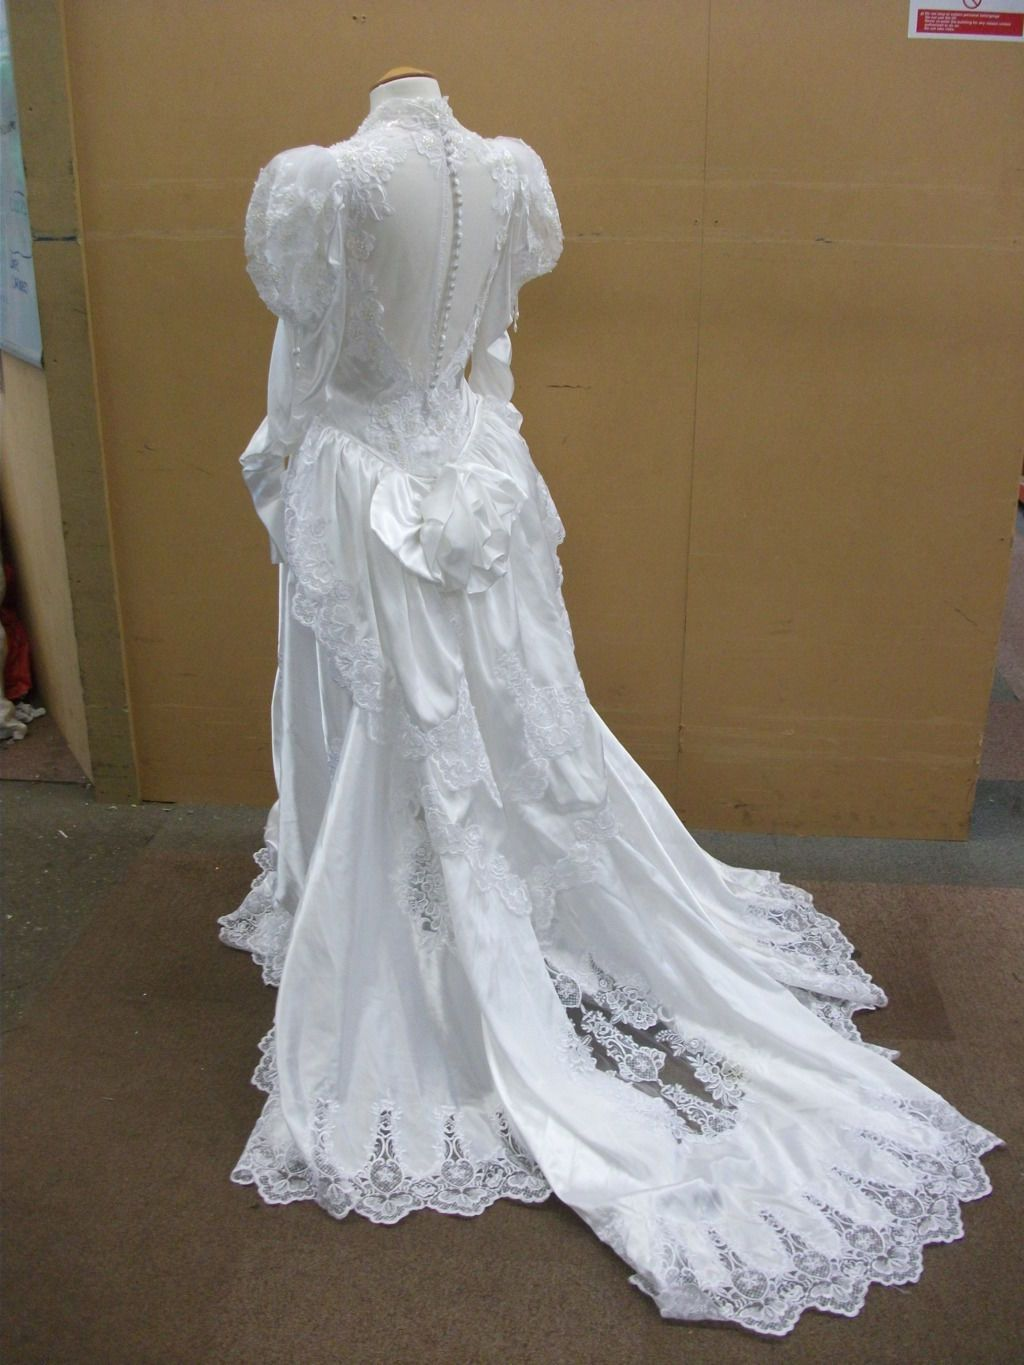 WHITE VICTORIAN STYLE WEDDING DRESS WITH TRAIN AND BUSTLE